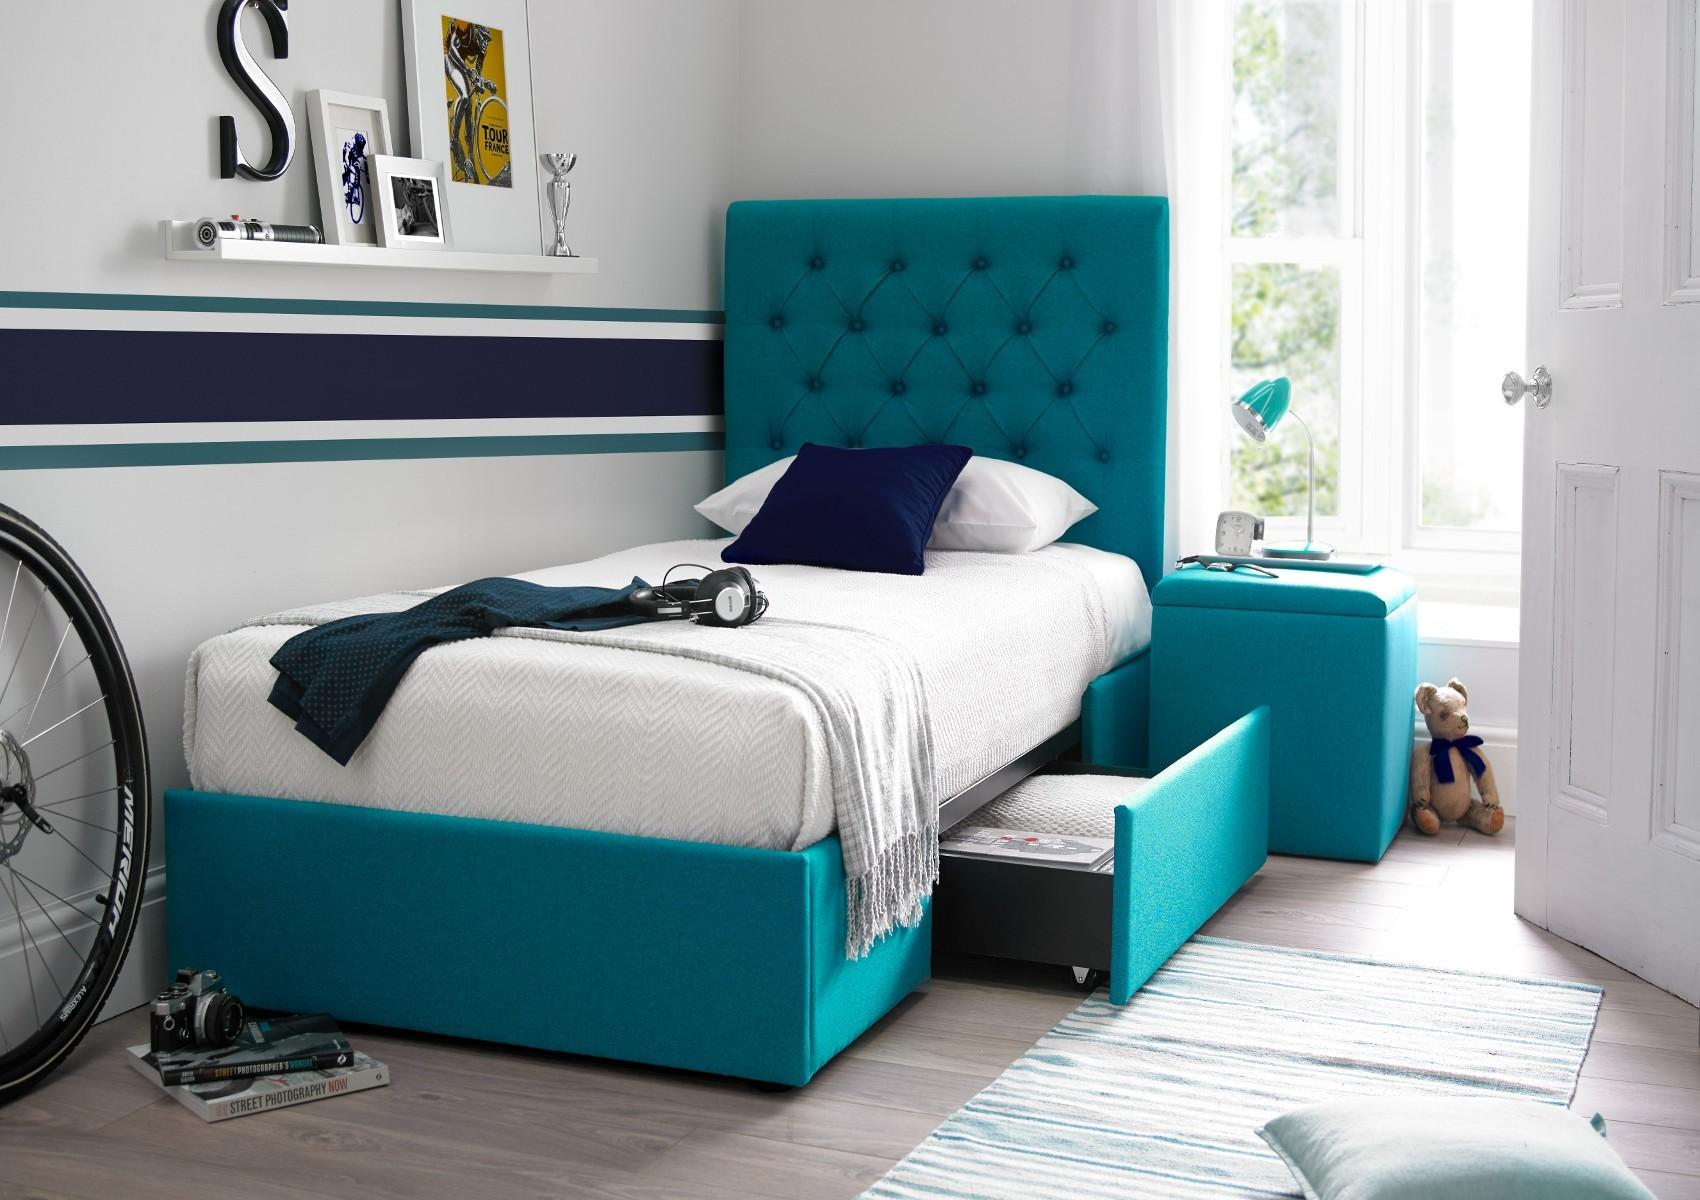 Kids Room Teal Drawer Bed Stylish Looks